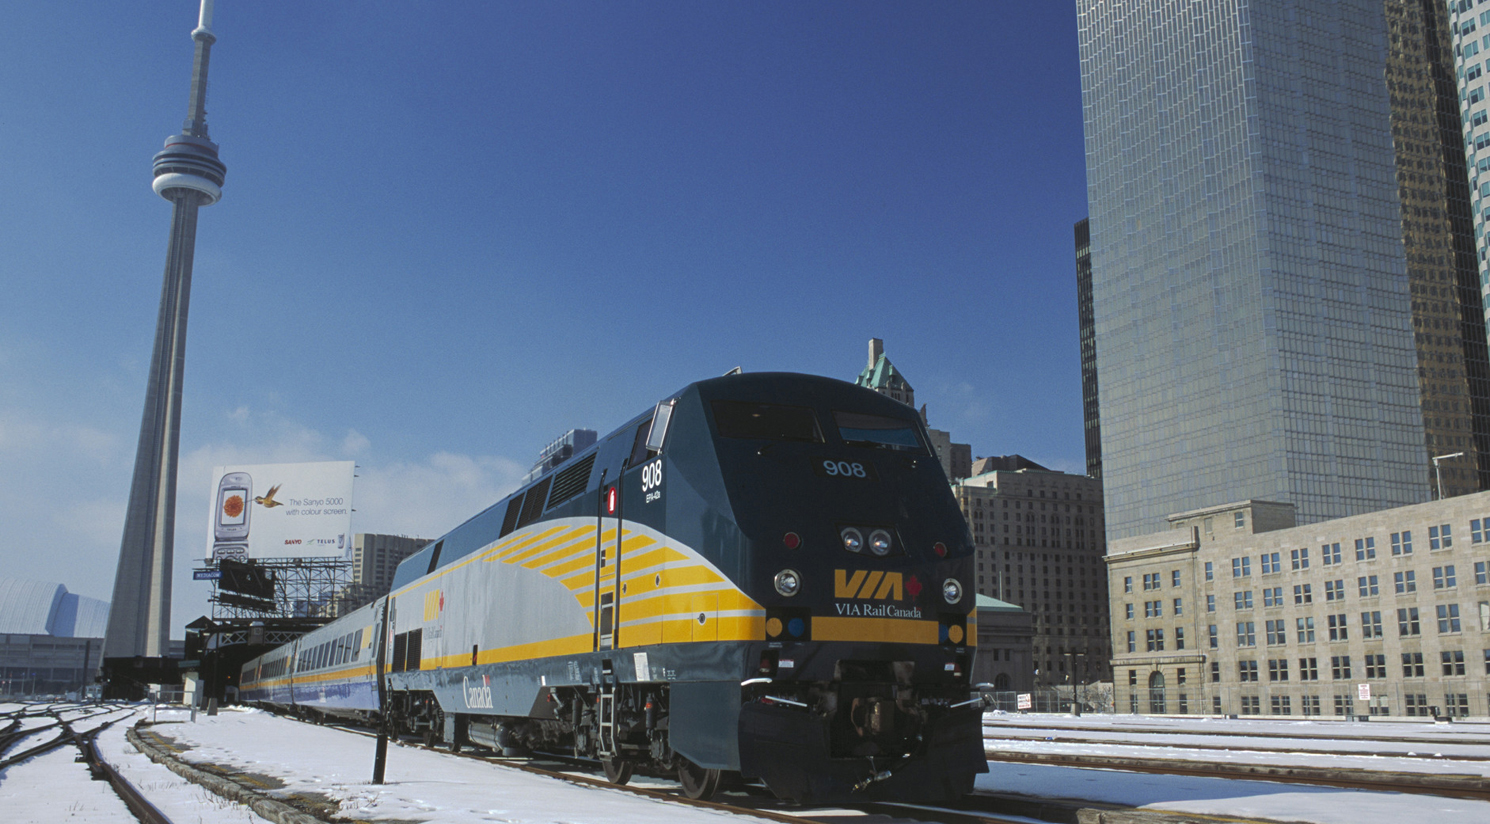 VIA Rail Windsor-Quebec HFR Project - Ridership